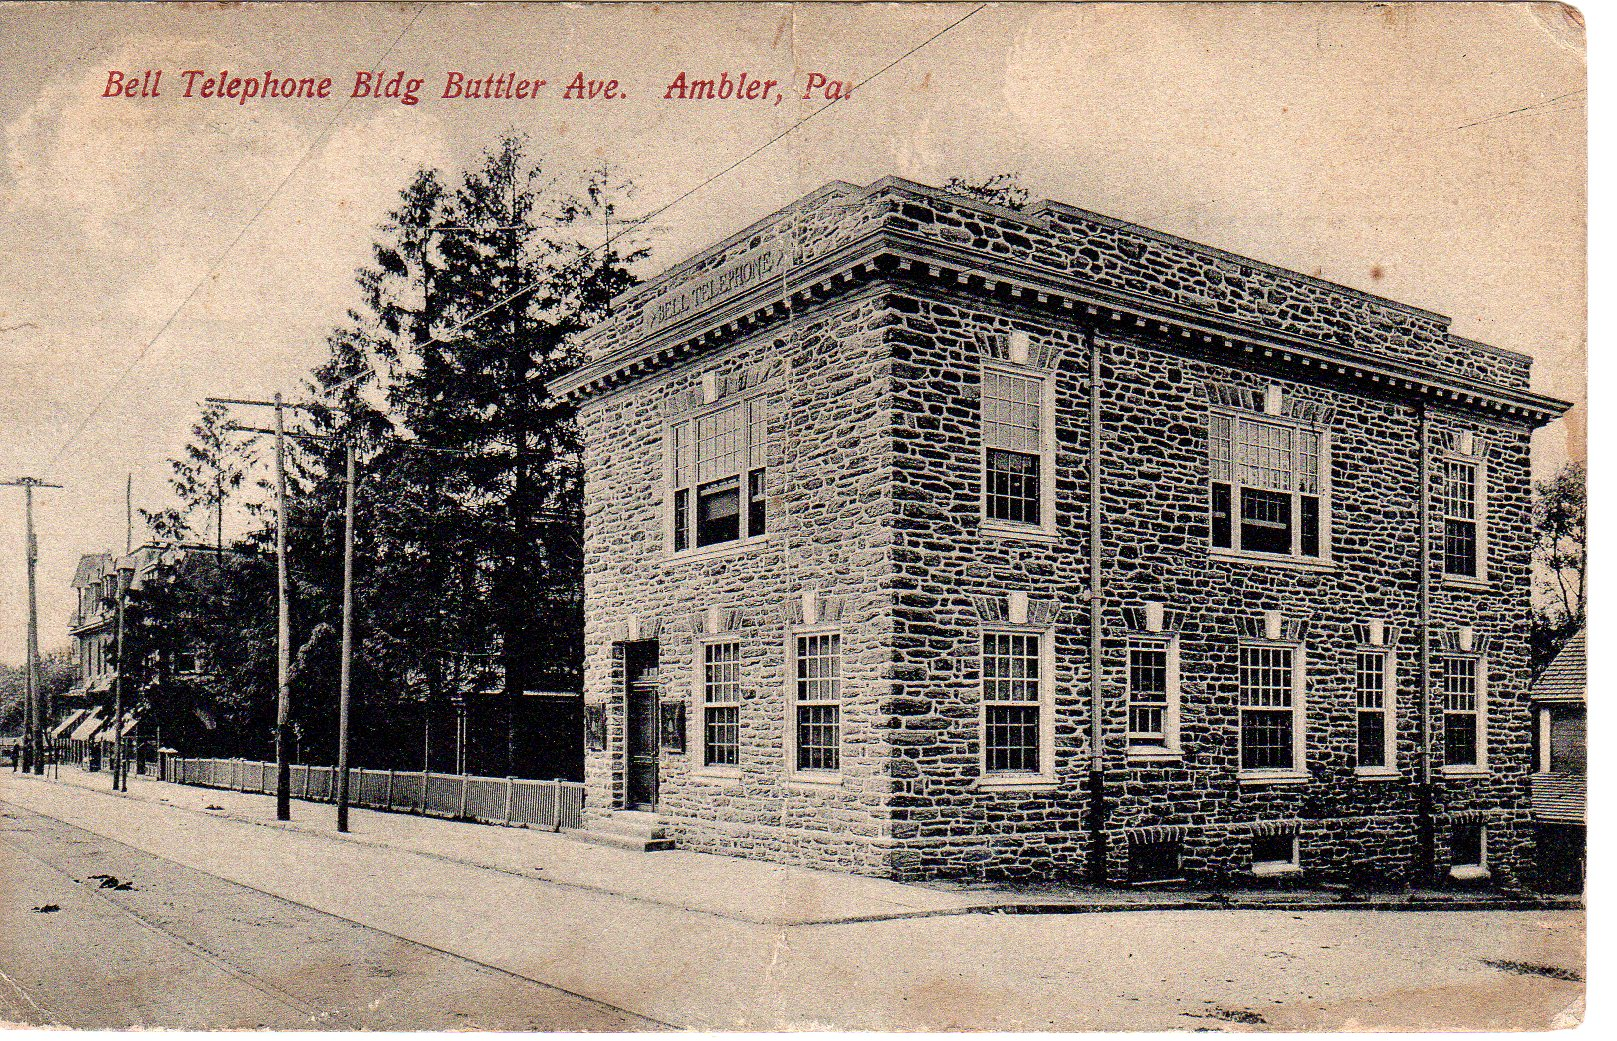 Post Card Collection (E Simon)_2682_48_Bell Telephone Building, Butler Ave, Ambler, Pa_6 Apr 1911